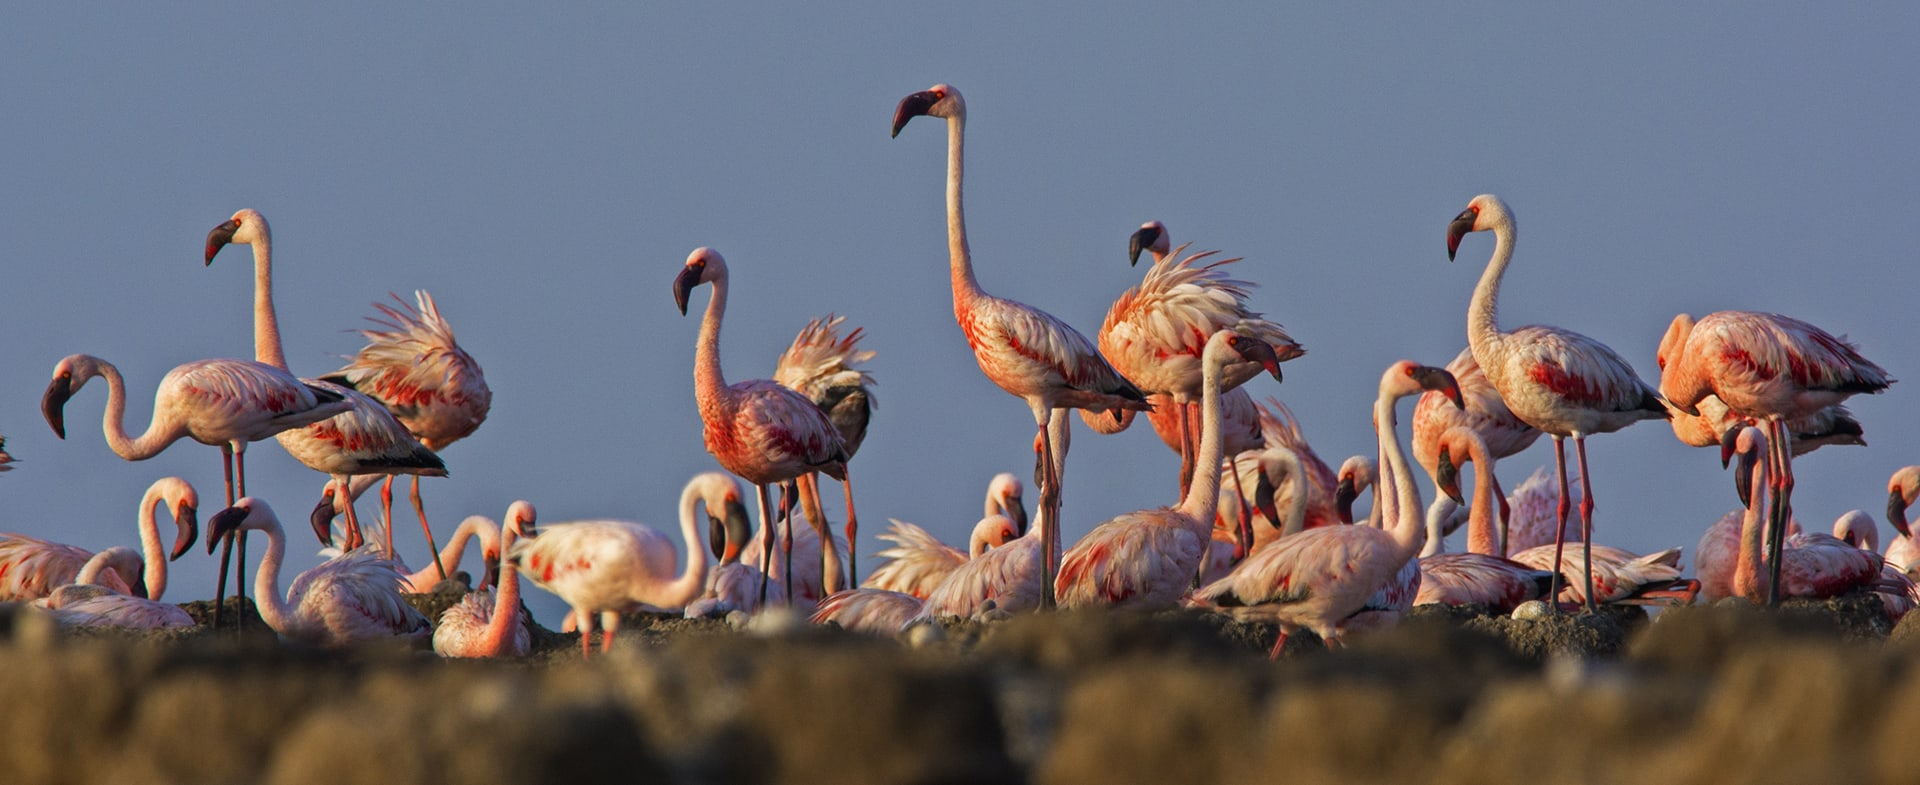 """""""We have also seen the birds use salt pans for nesting in the last 30-40 years,"""" says Shah. The raised borders, or bunds of these pans are colonised by flamingos when larger numbers arrive for nesting. """"Out of the 5-6 colonies that I have been monitoring, I see at least 1-2 on the salt bund,"""" says Shah."""